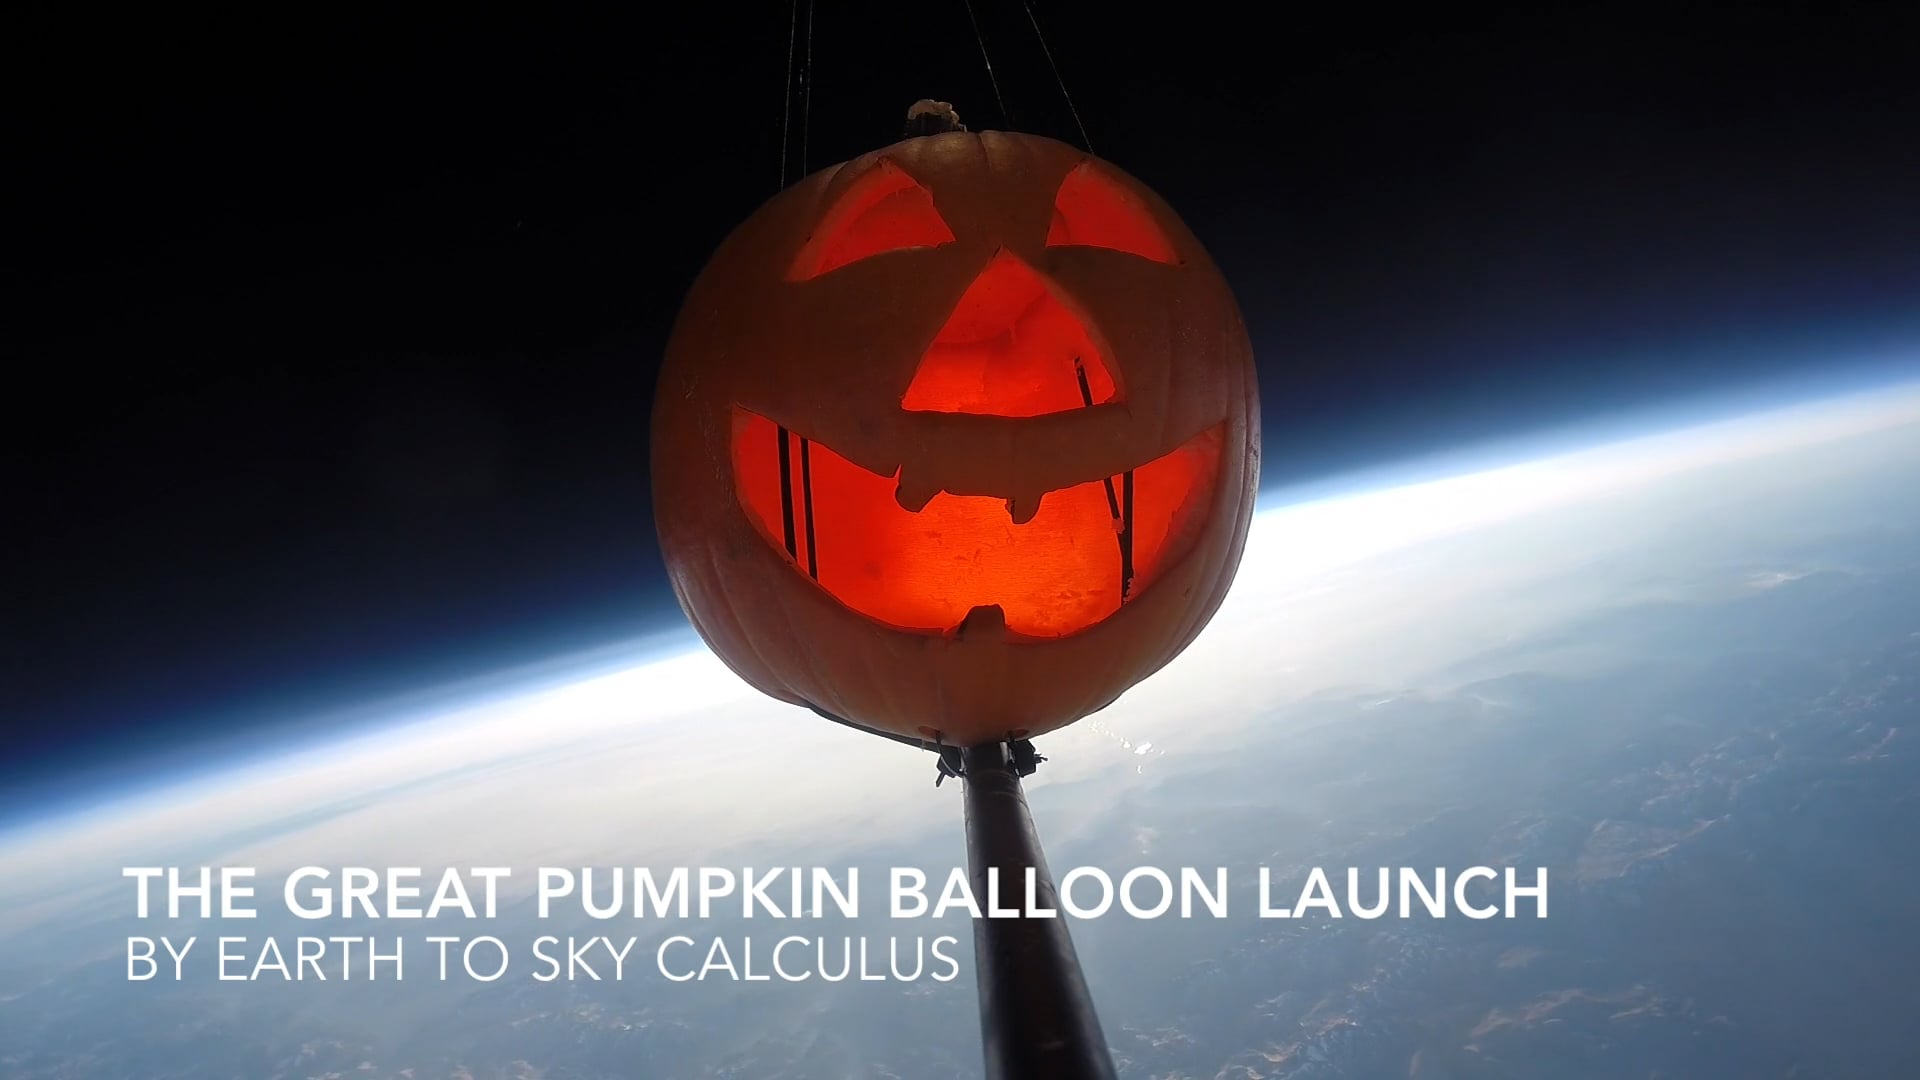 The Great Space Pumpkin